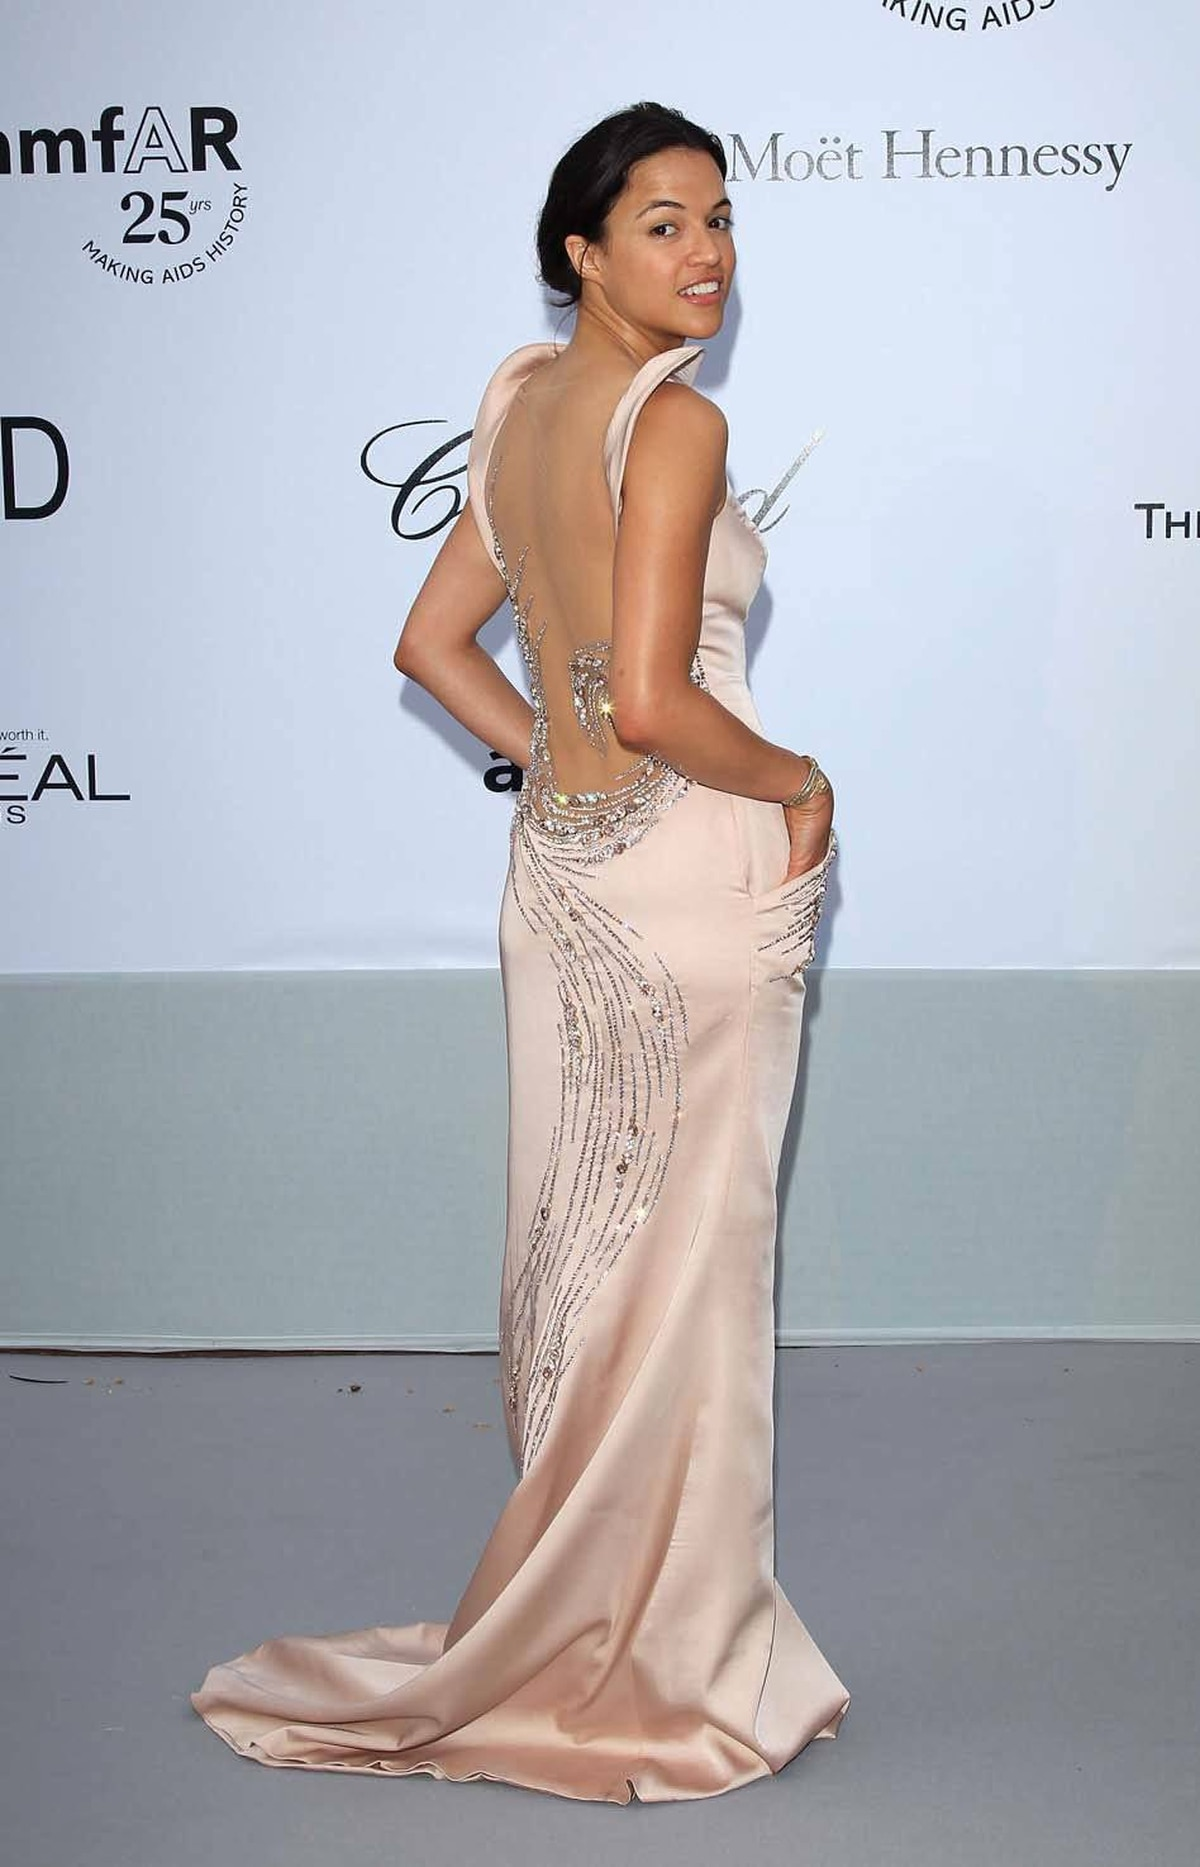 Michelle Rodriguez attends amfAR's Cinema Against AIDS Gala at the Cannes Film Festival on Thursday.